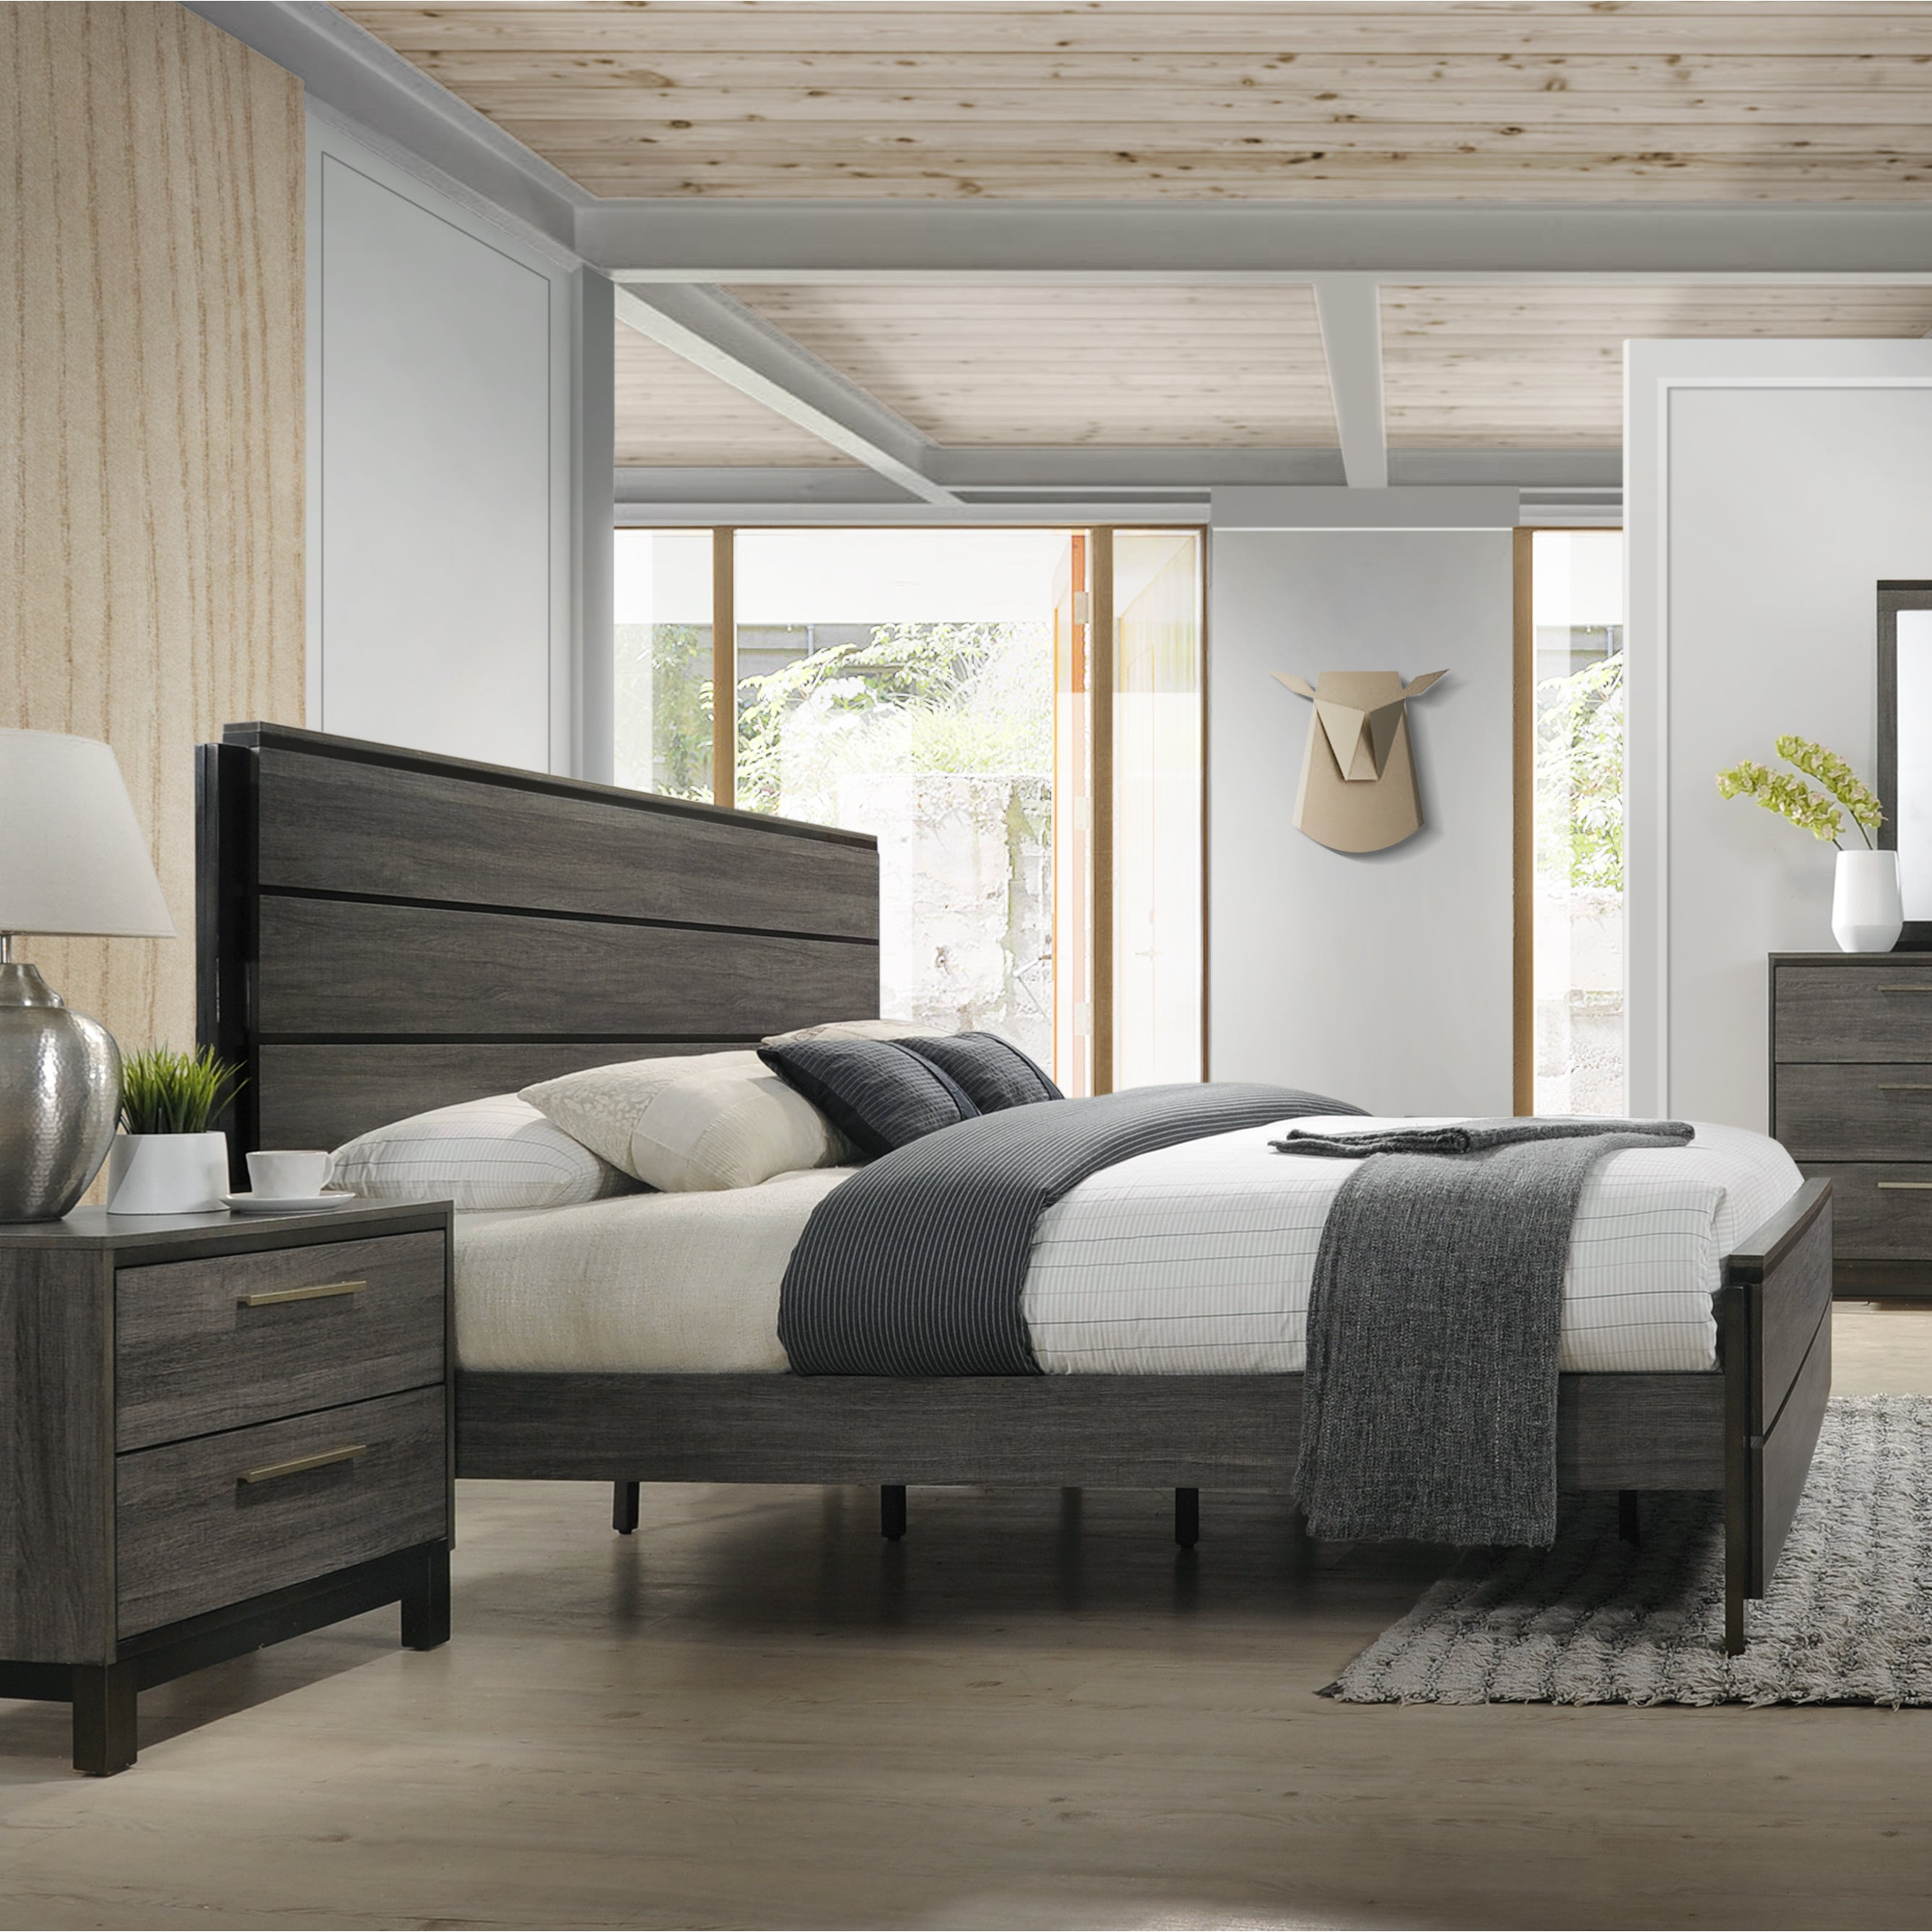 Ioana 187 Antique Grey Finish Wood Bed Room Set King Size Dresser Mirror 2 Night Stands Chest